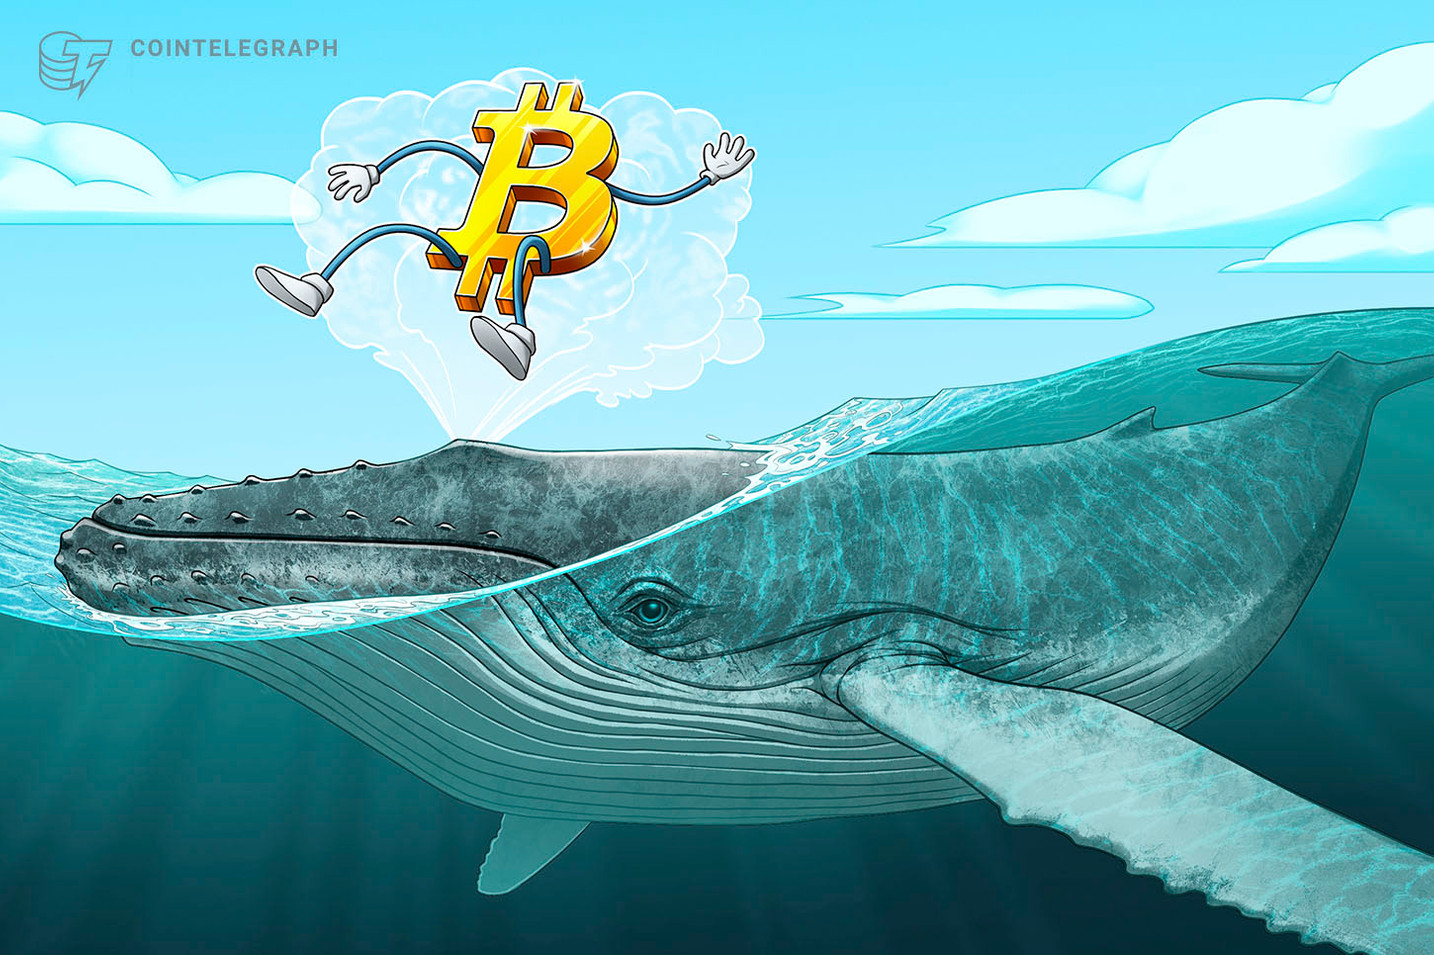 Bitcoin's 'Elon Musk pump' rally to $48K was exclusively driven by whales